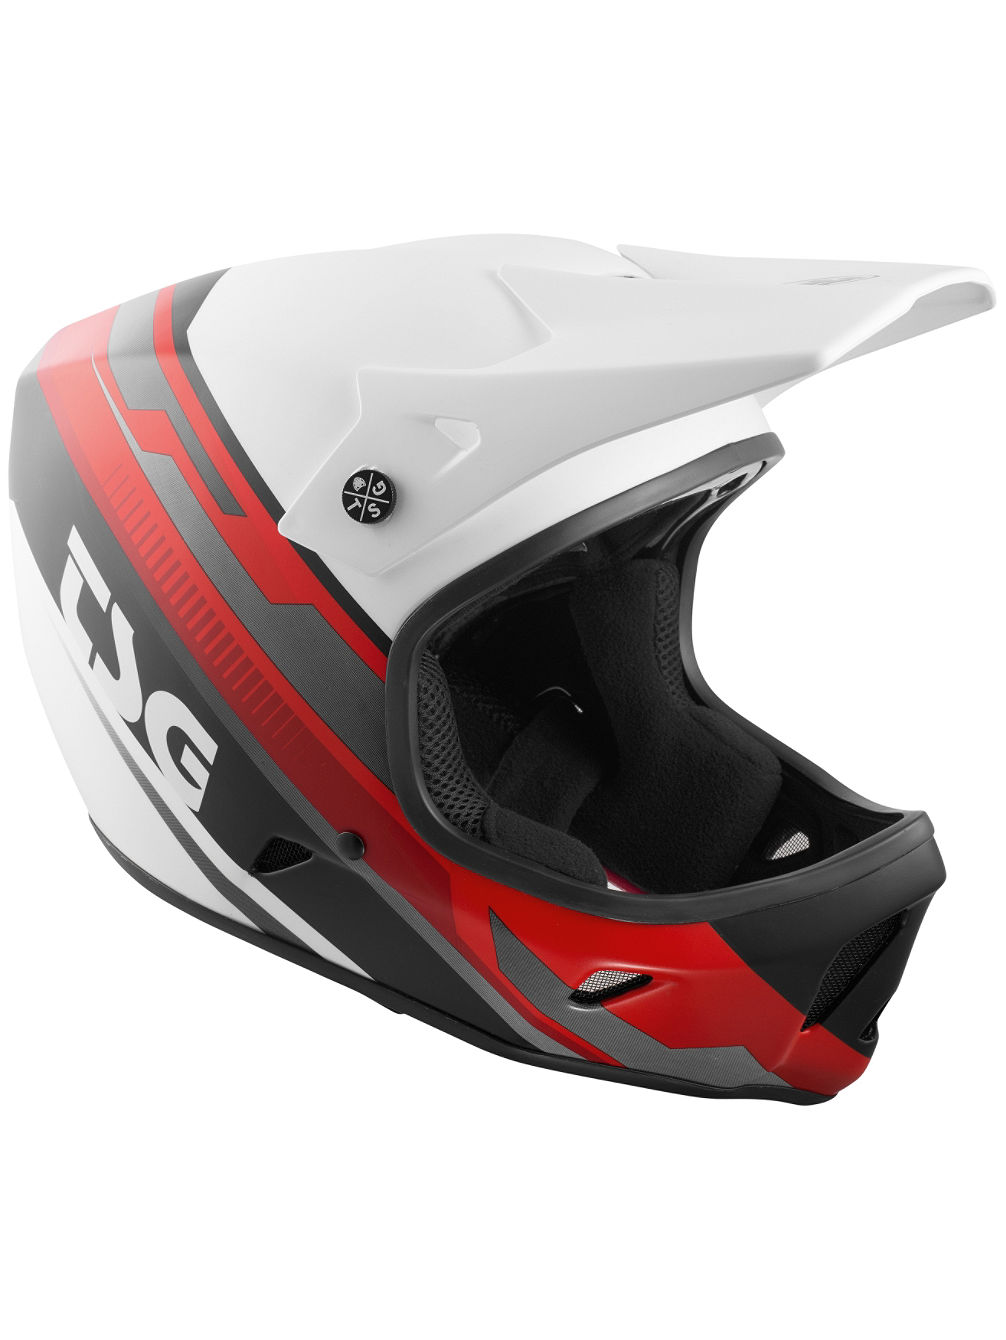 Advance Graphic Design Helmet